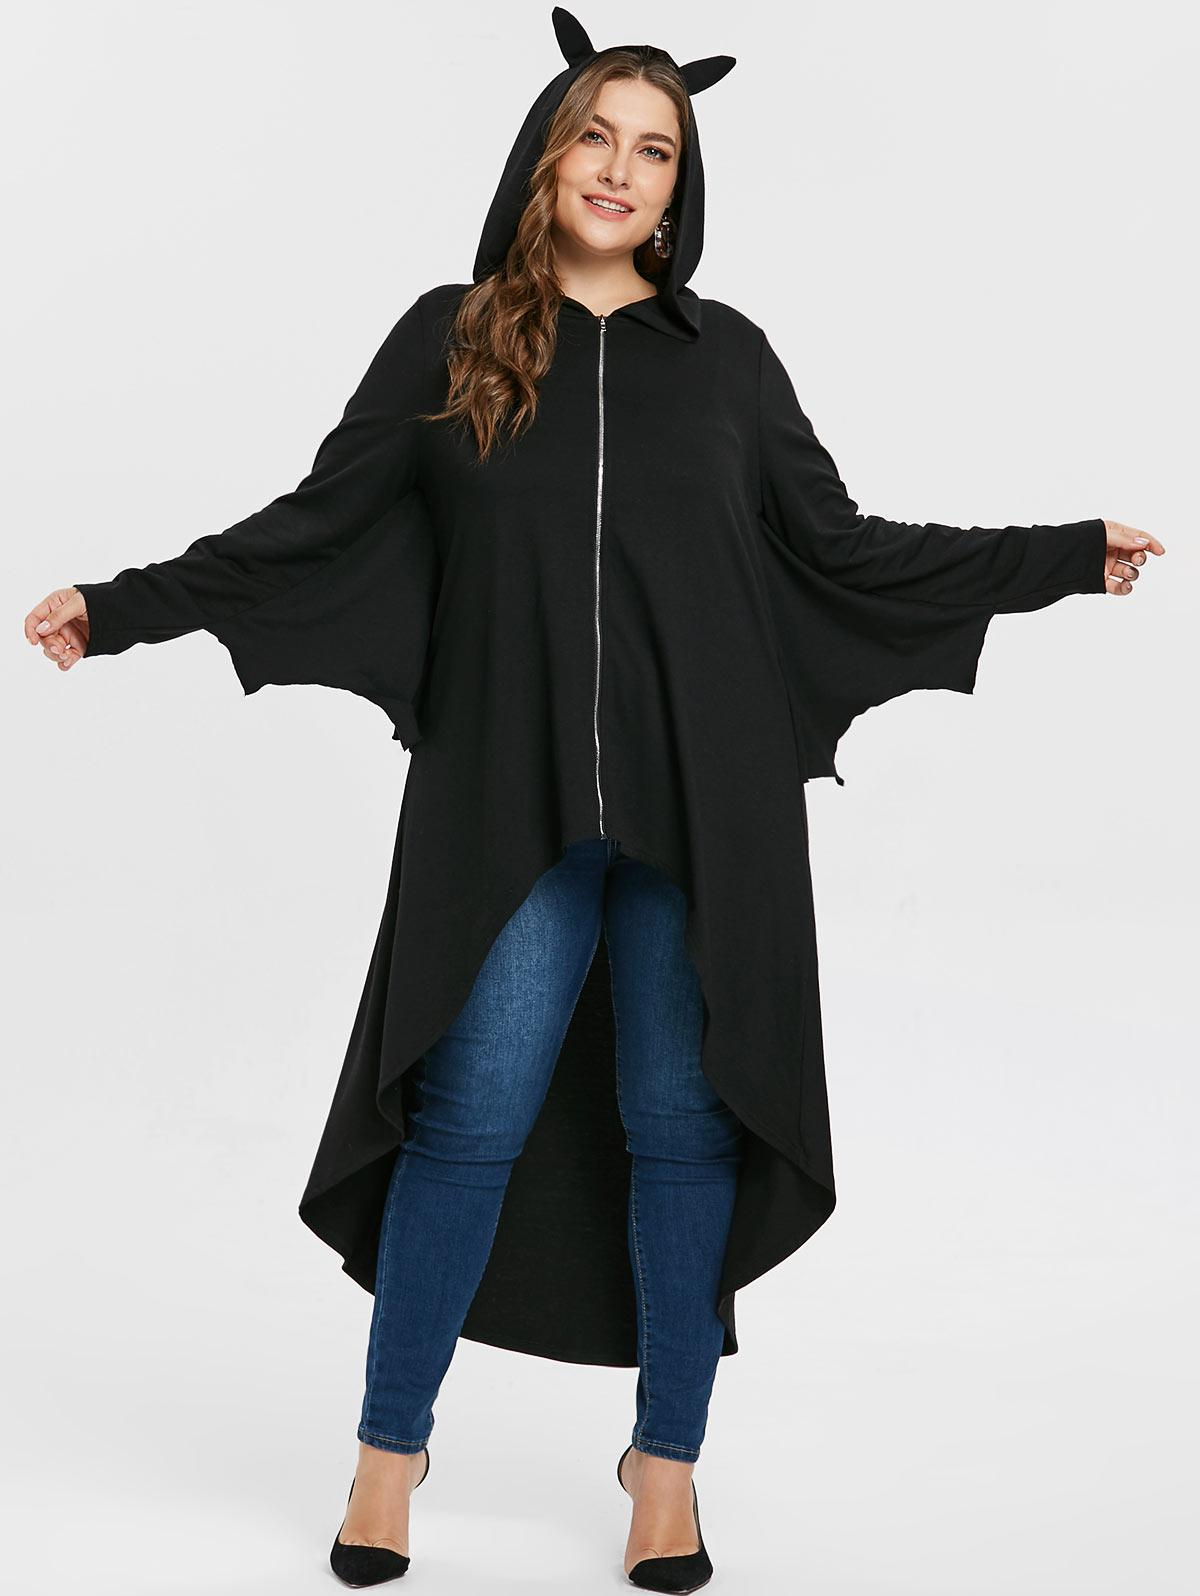 7ac28d9ac4cf9 Wipalo Plus Size 5XL Batwing Sleeve High Low Asymmetrical Halloween Coat  Women Autumn Casual Solid Hooded Long Outwear Overcoat Online with   70.39 Piece on ...